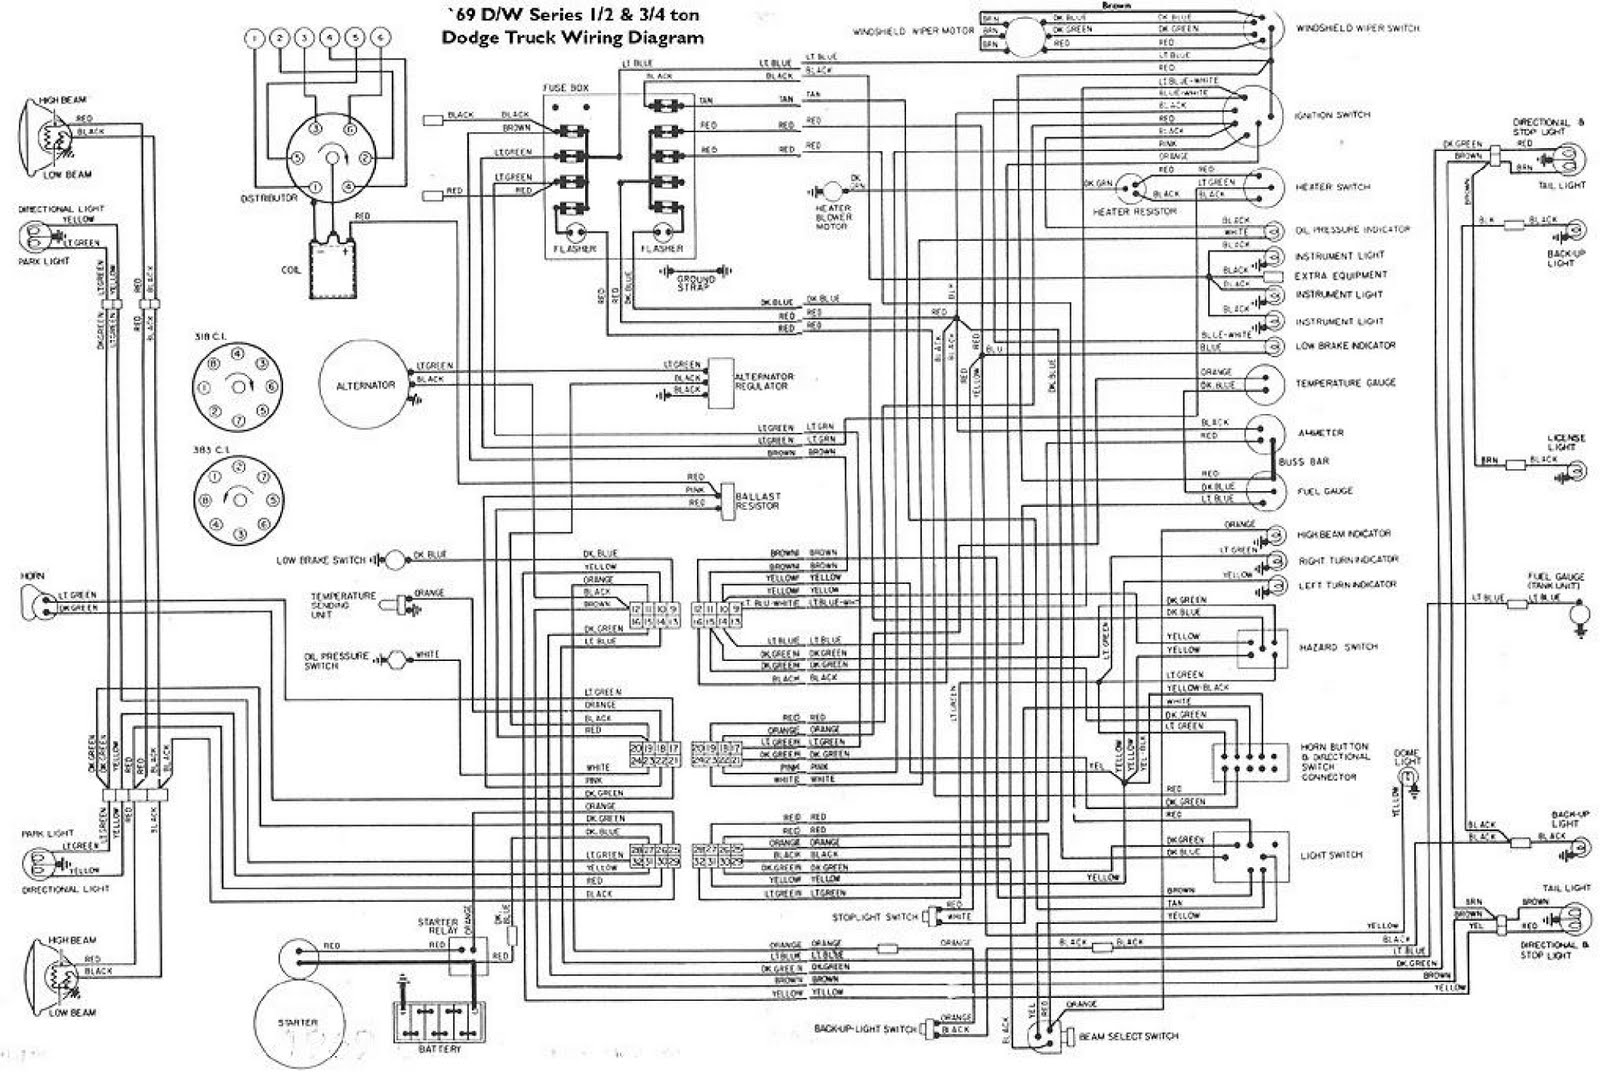 hight resolution of 1976 dodge w200 wiring diagram wiring diagram imp 1974 dodge w200 wiring diagram 1976 dodge w200